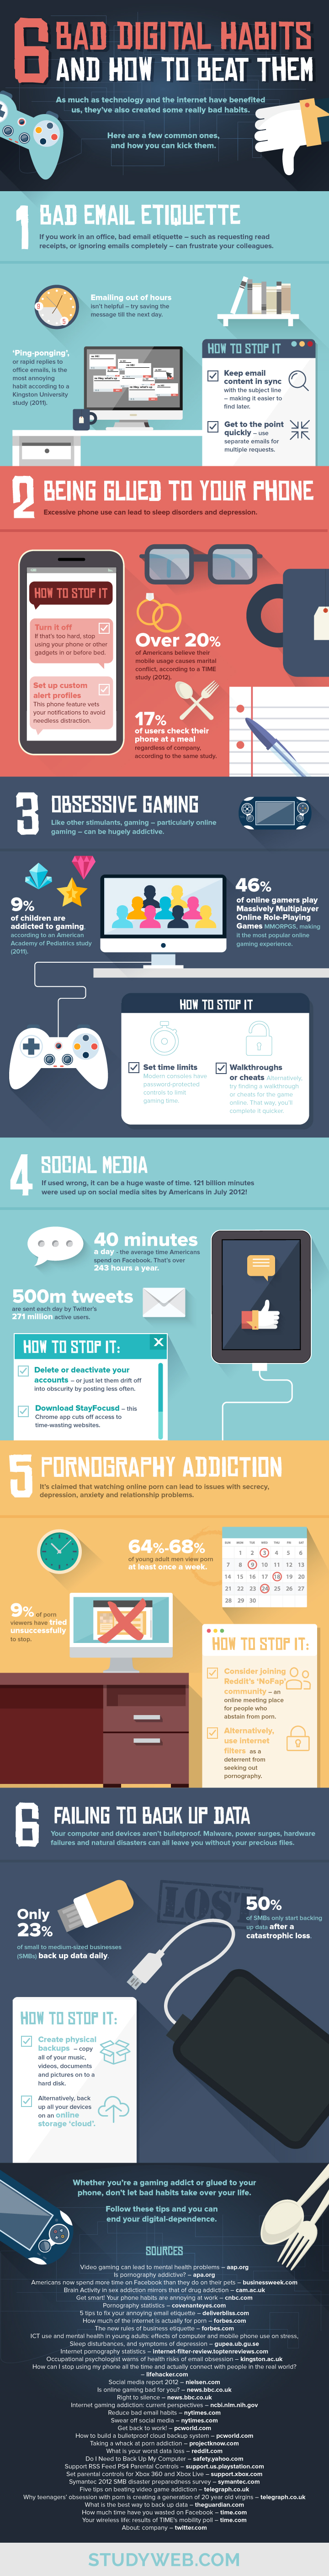 6 Bad Digital Habits and How to Beat Them Tipsographic